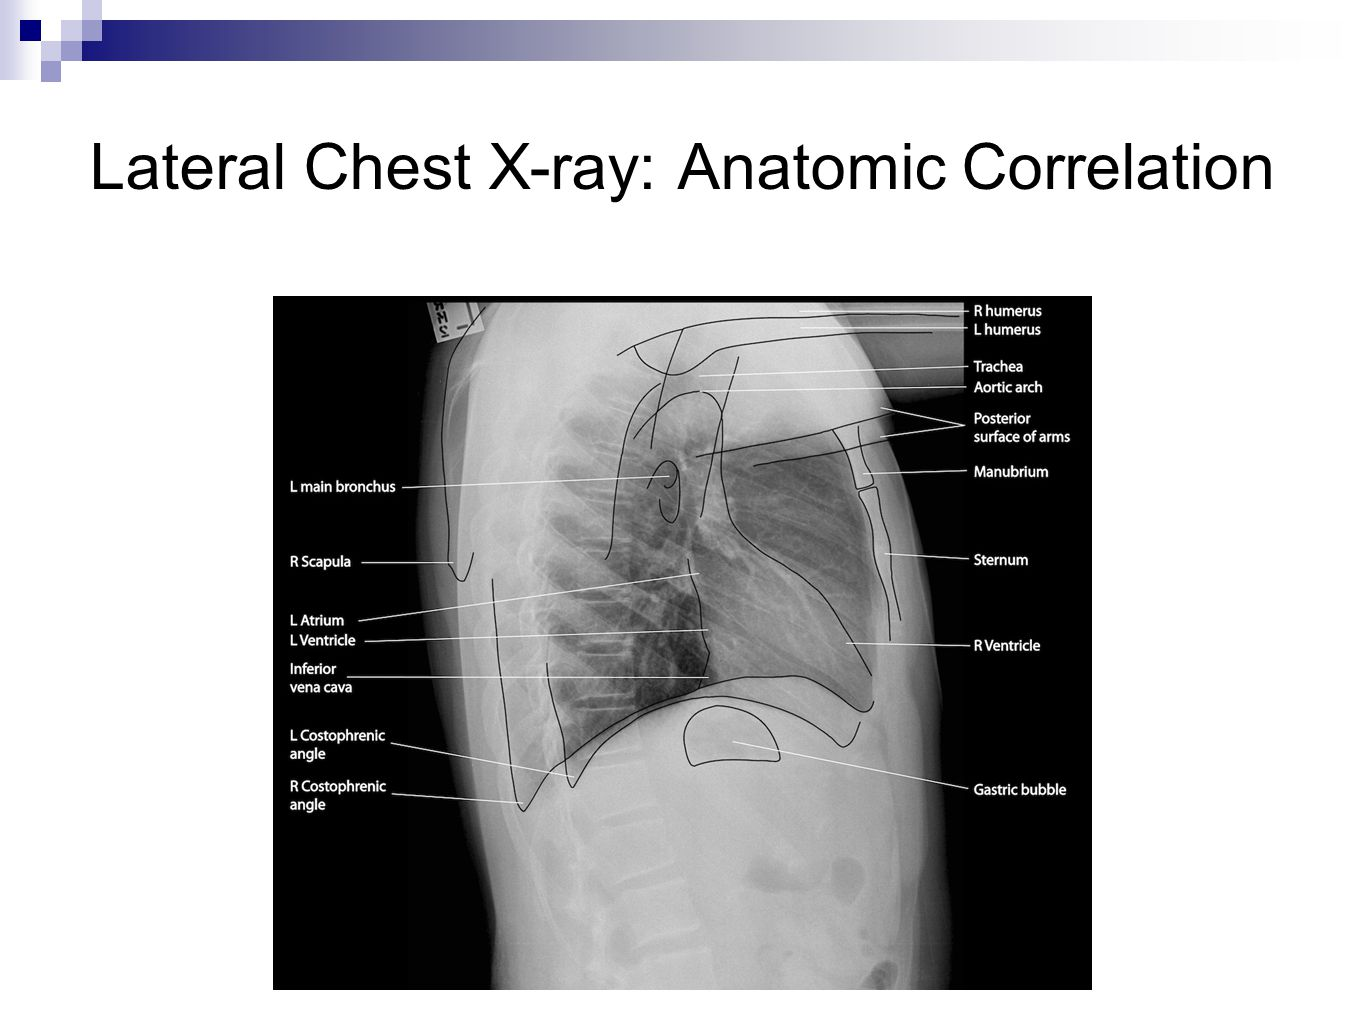 Lateral Chest X-ray: Anatomic Correlation